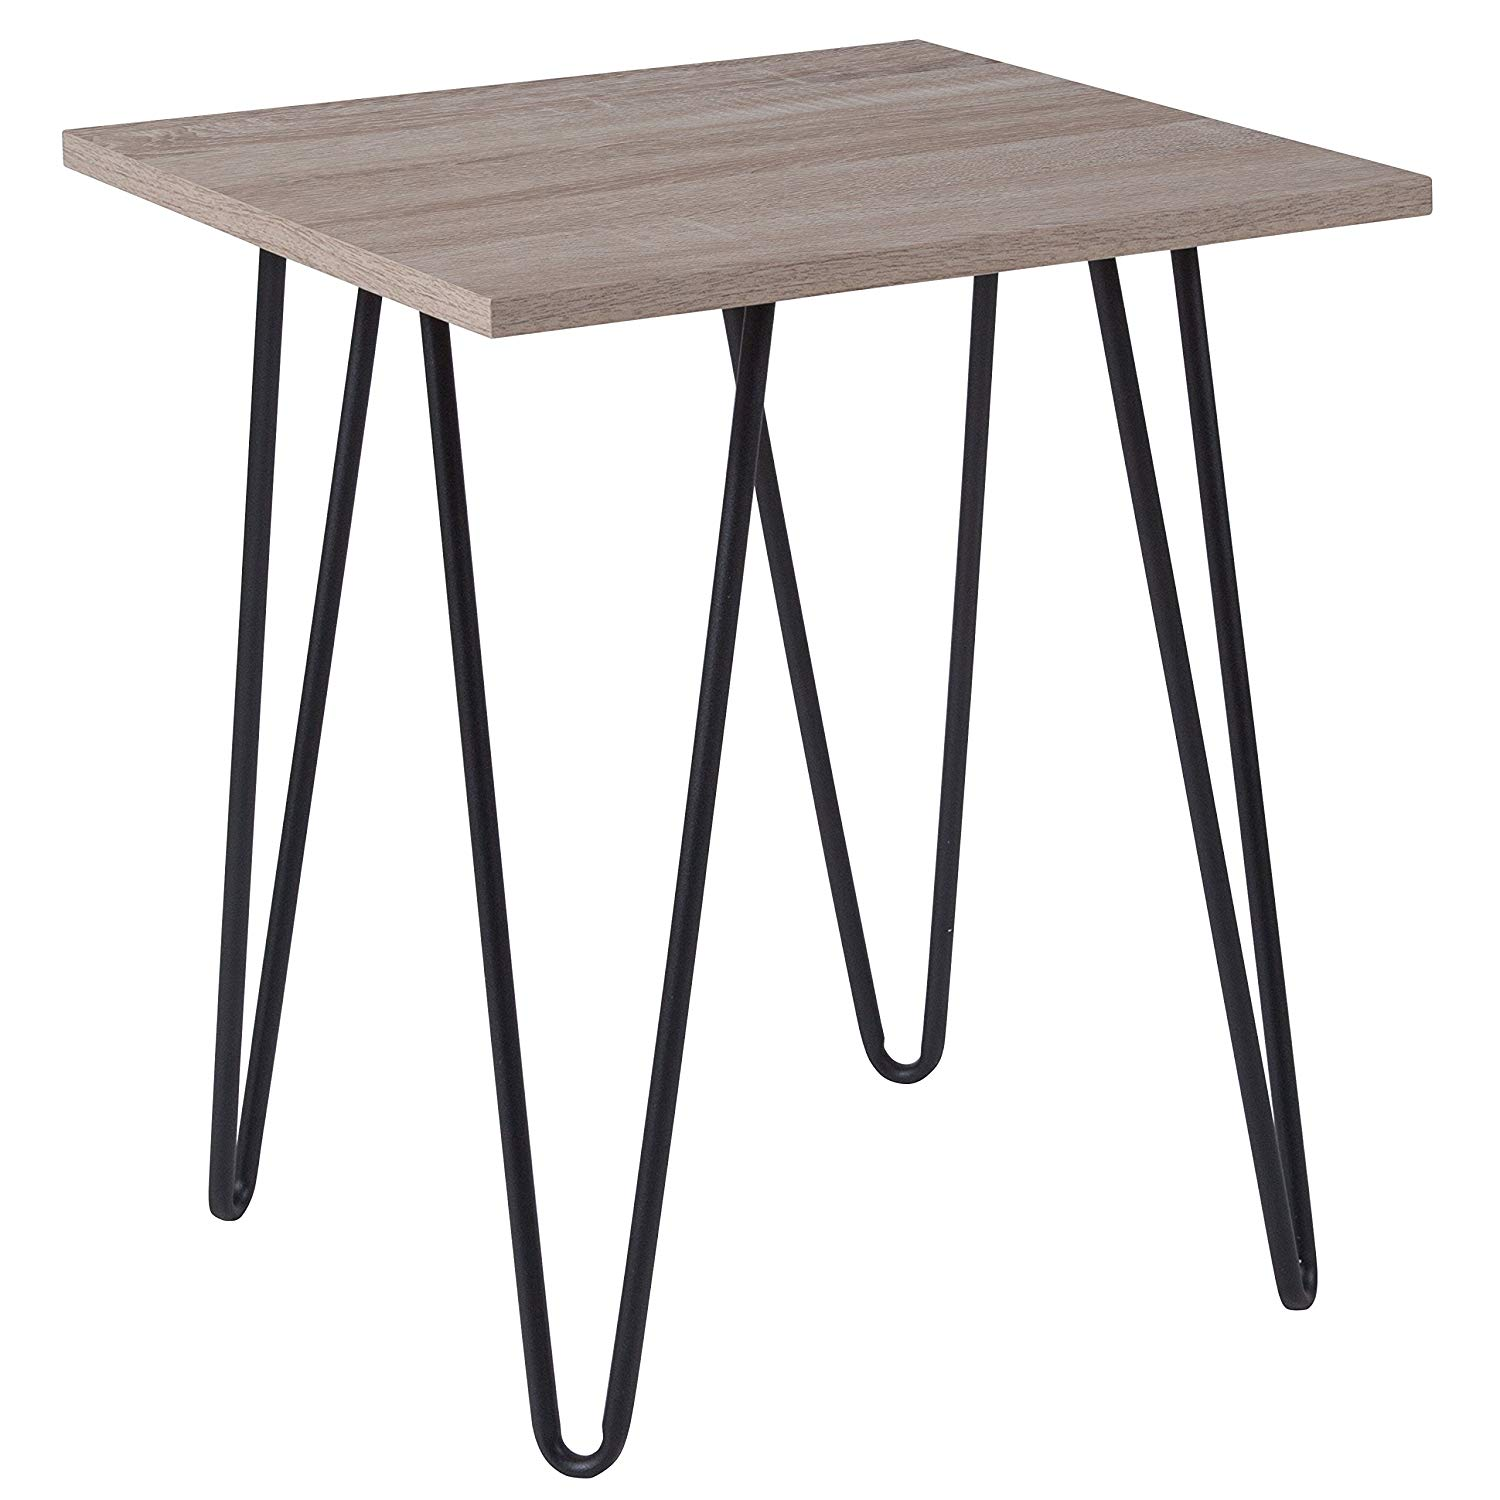 flash furniture oak park collection driftwood wood grain black and end table finish with metal legs kitchen dining living room layout tips solid bedside stanley girls bedroom